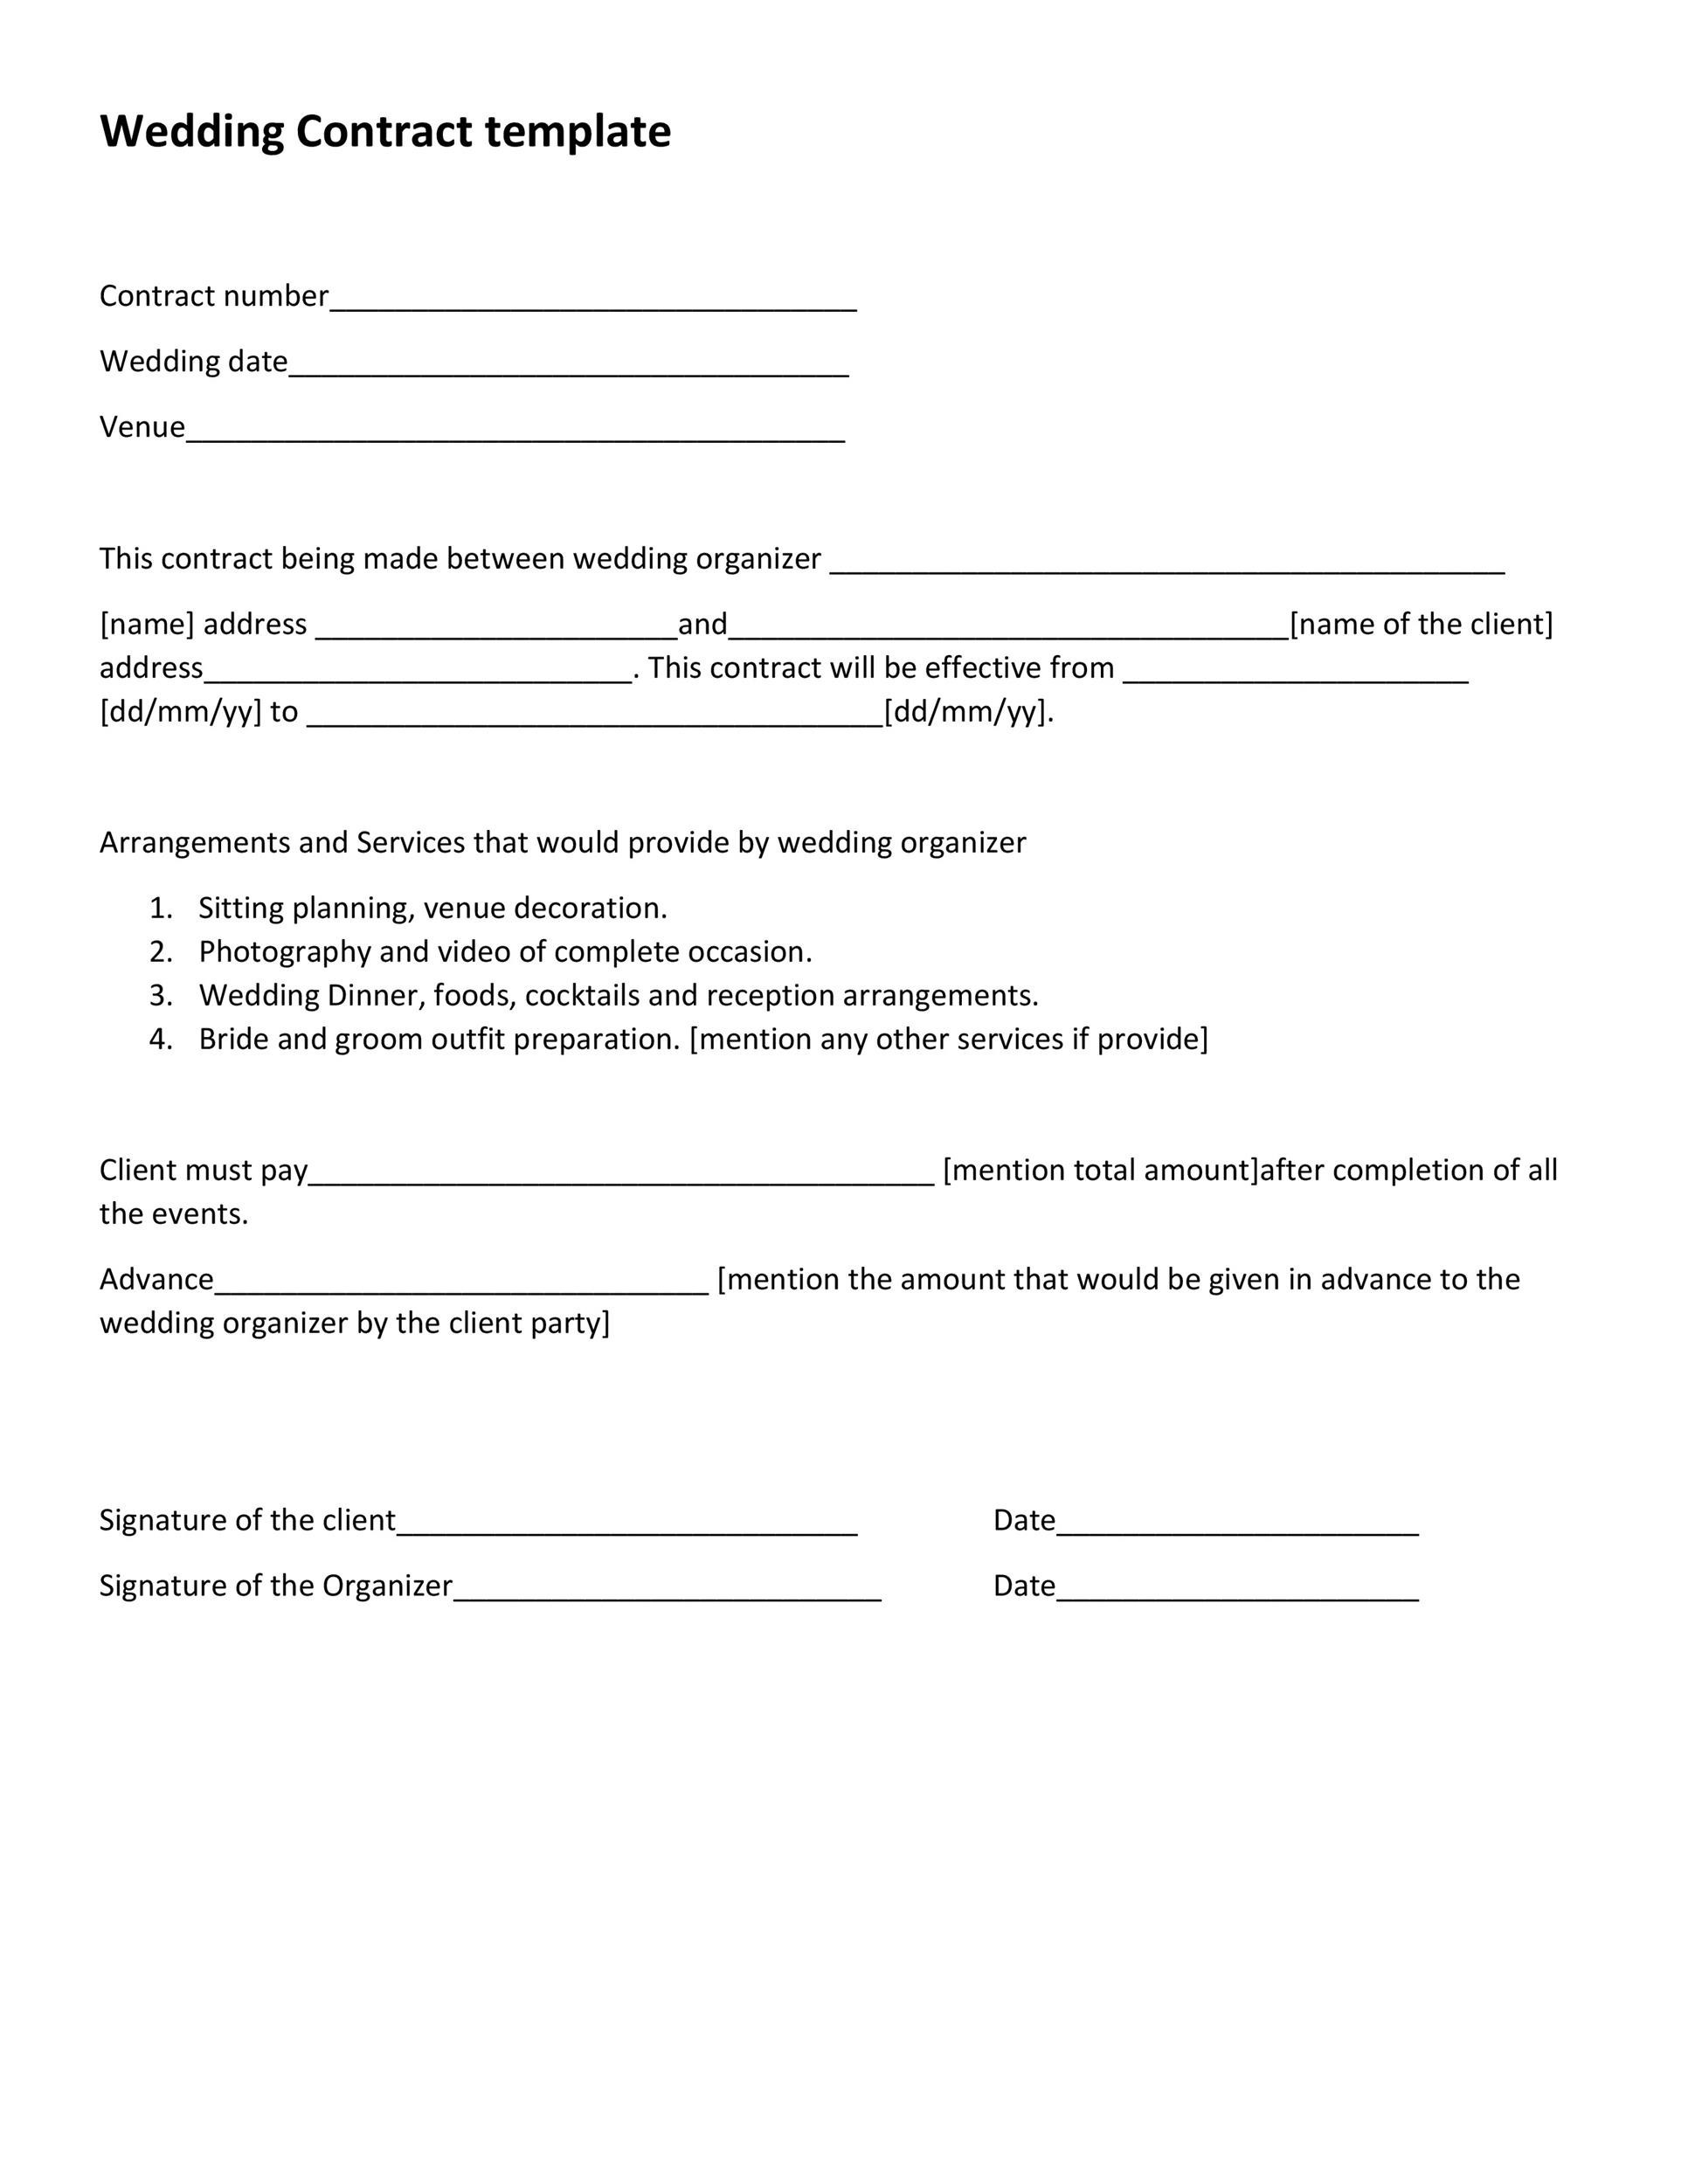 Free marriage contract template 26